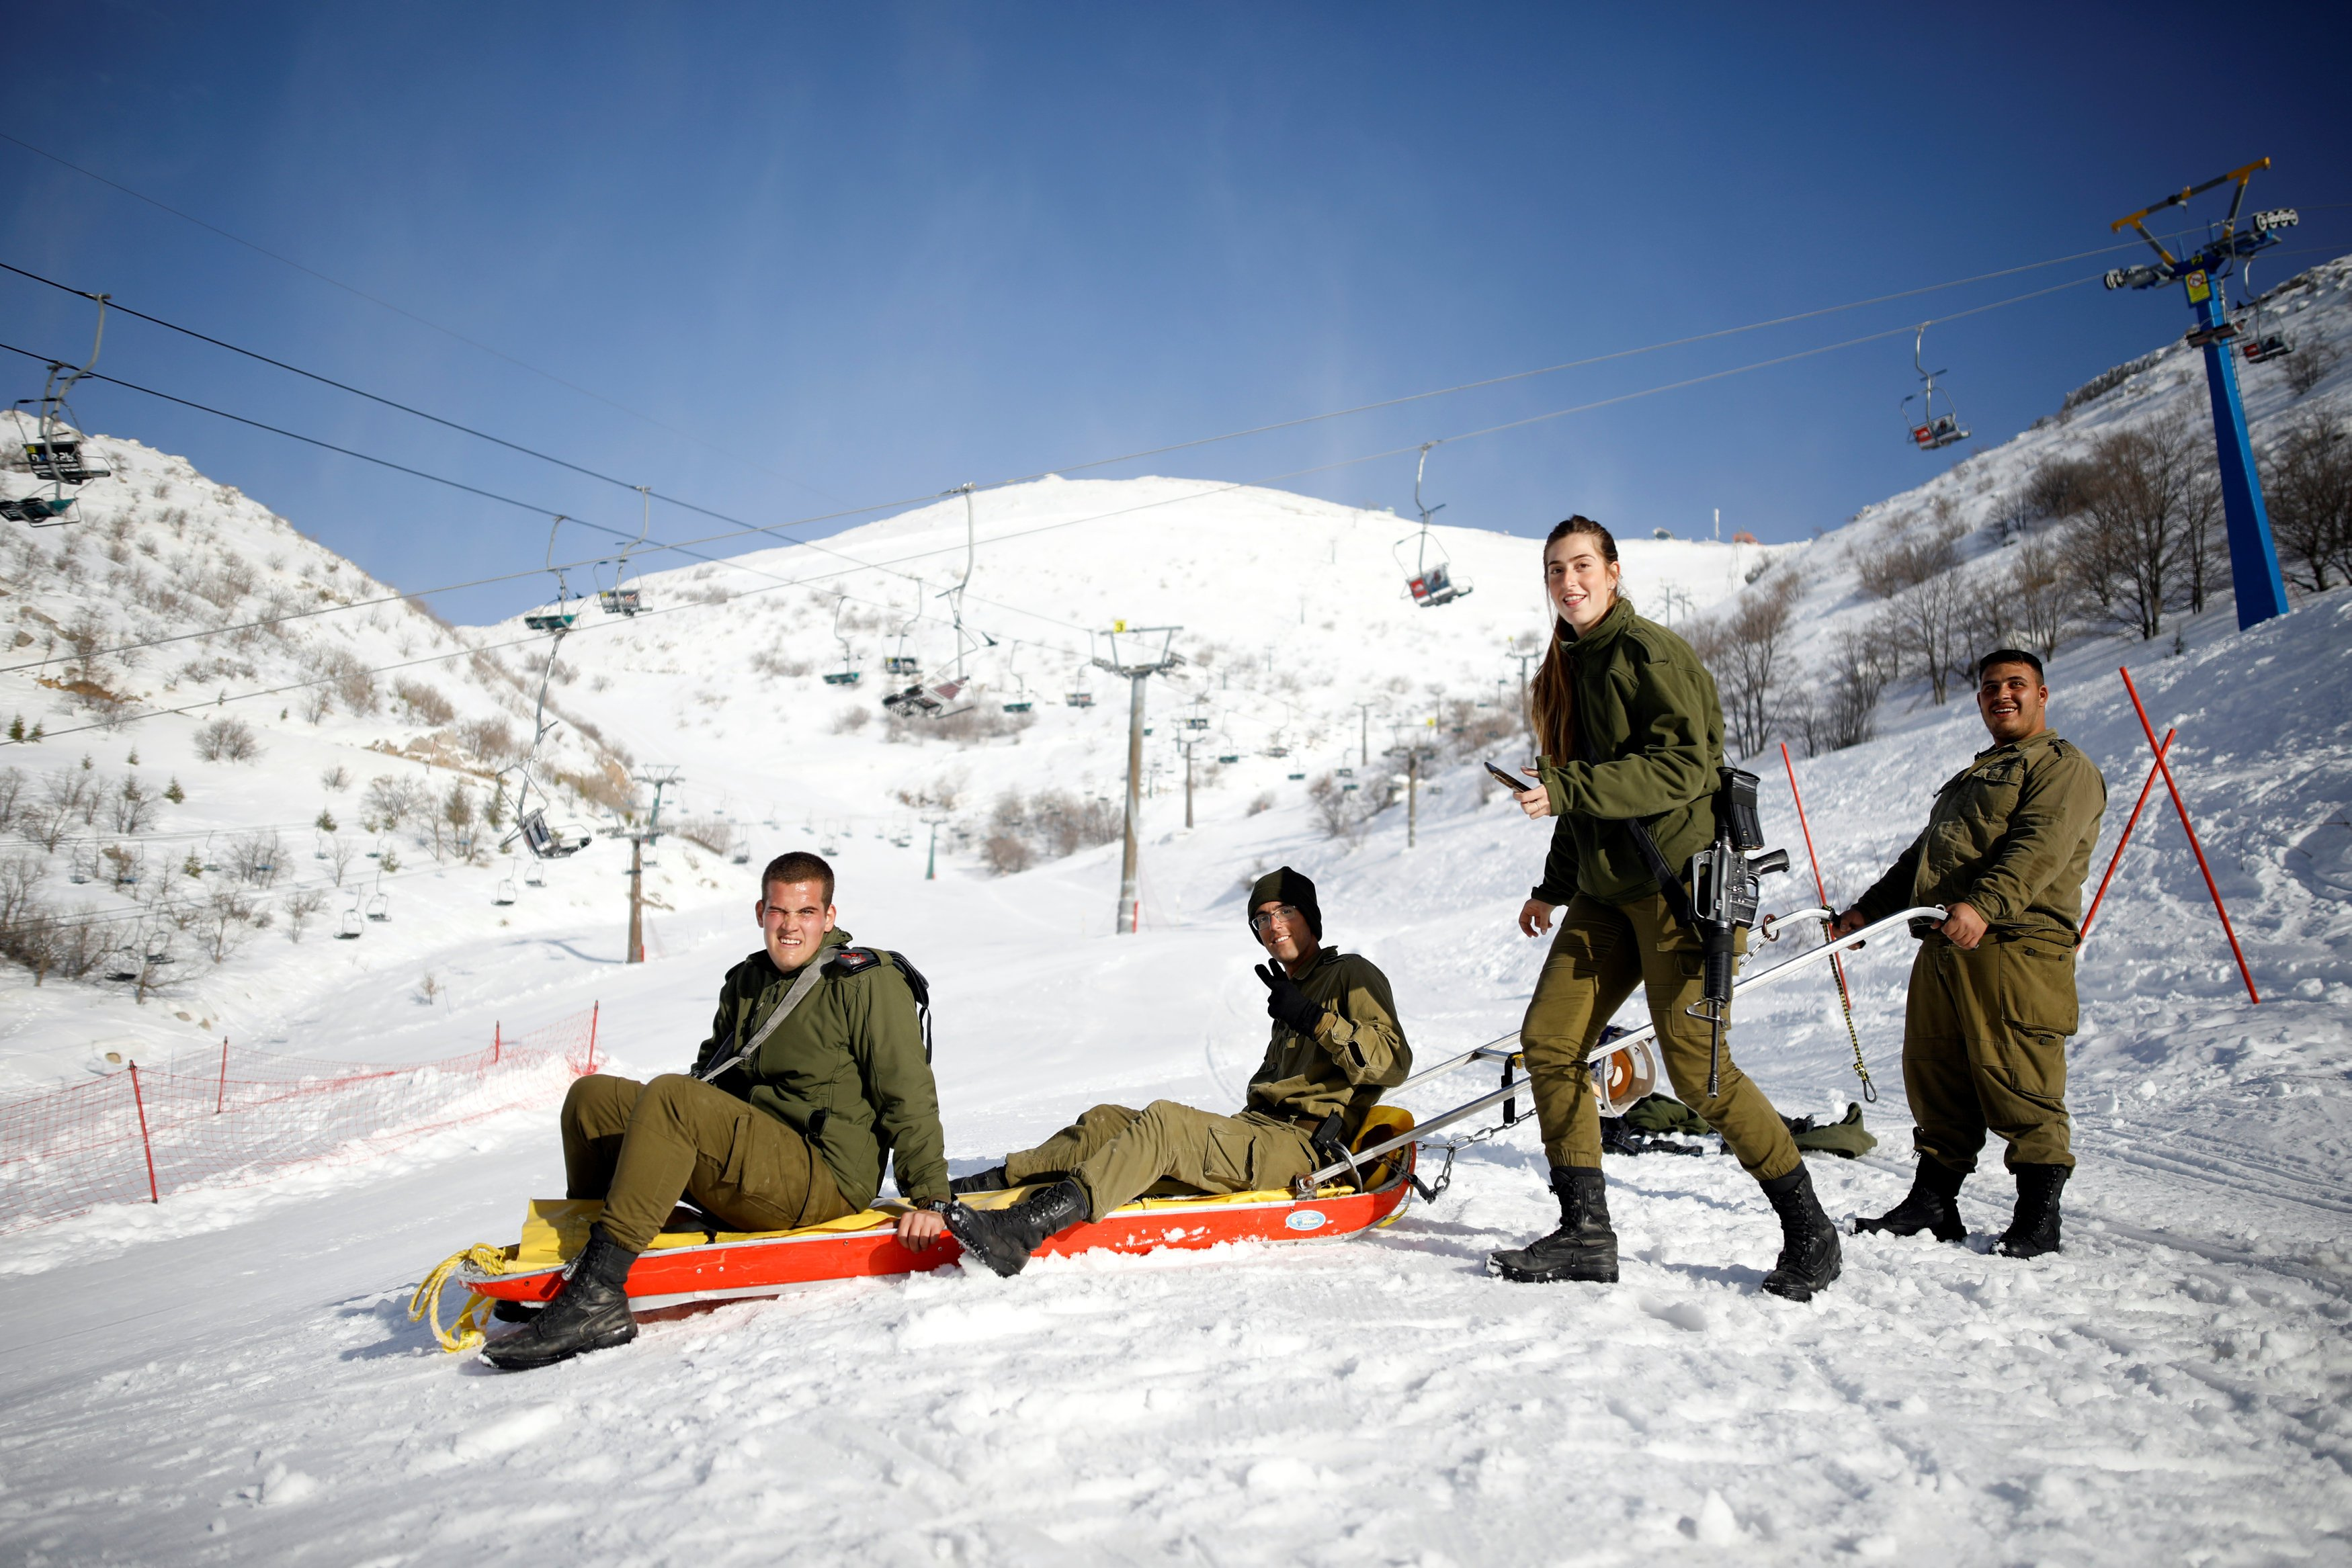 Israeli soldiers on a sled in Mount Hermon in the Israeli-occupied Golan Heights near Israel - January 2019 (Reuters)